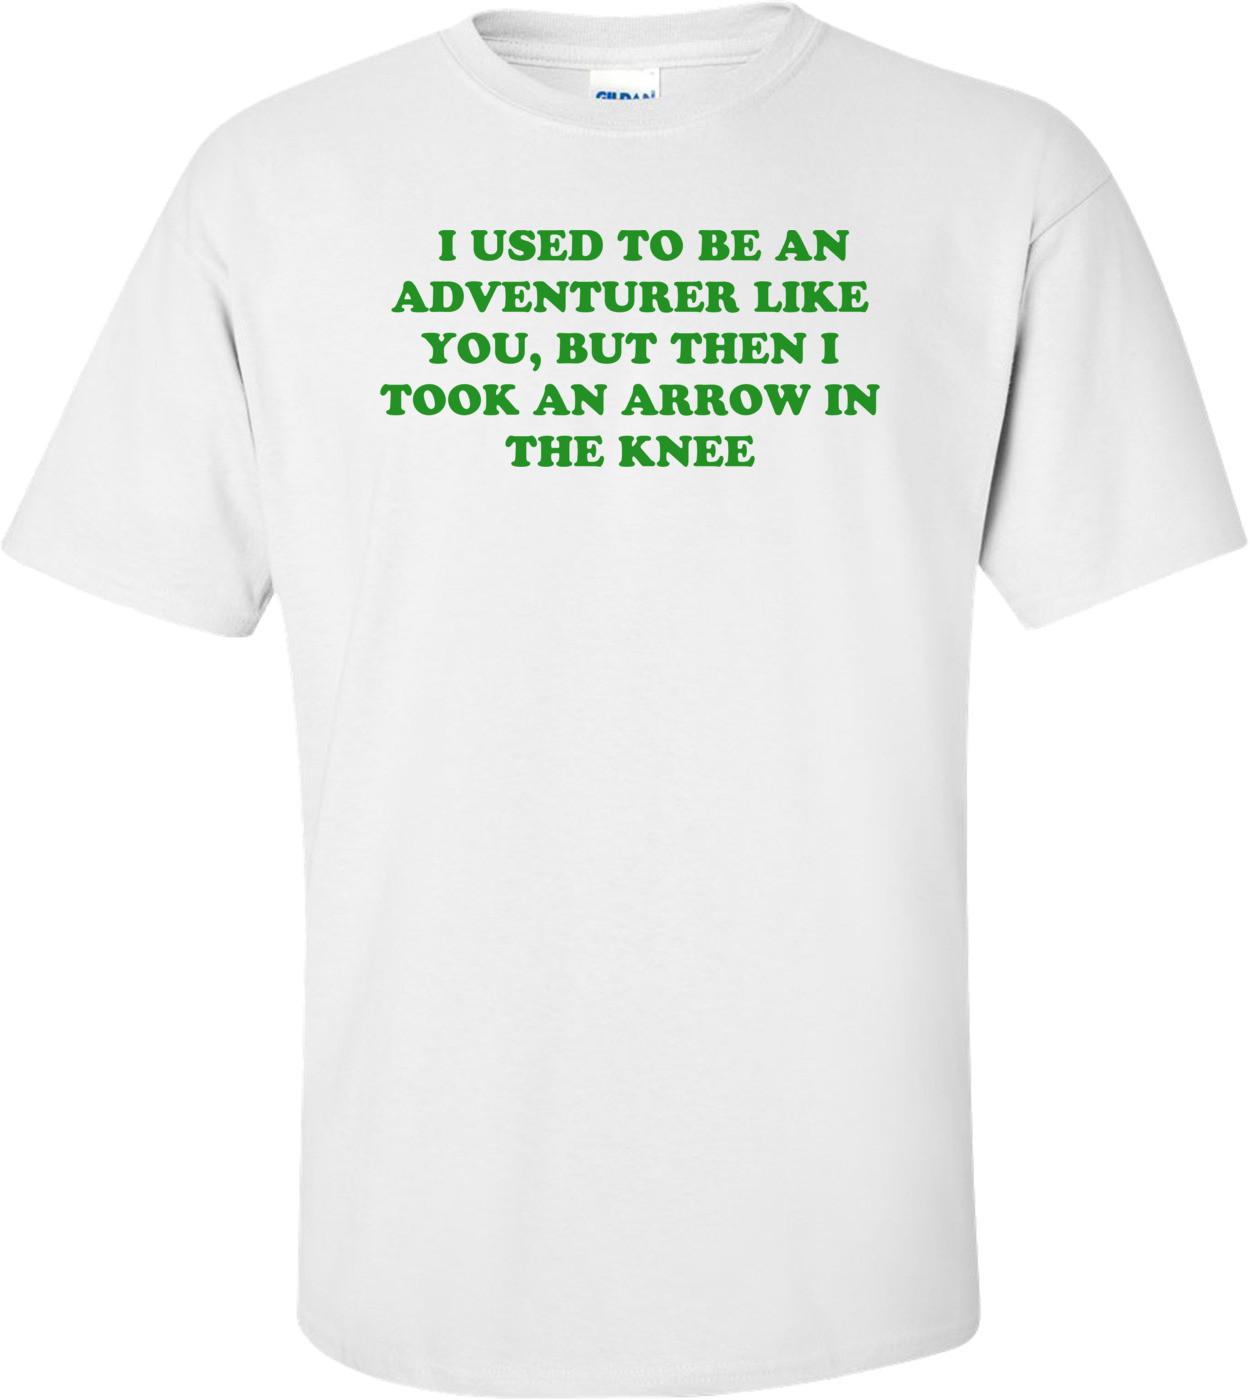 I USED TO BE AN ADVENTURER LIKE YOU, BUT THEN I TOOK AN ARROW IN THE KNEE Shirt